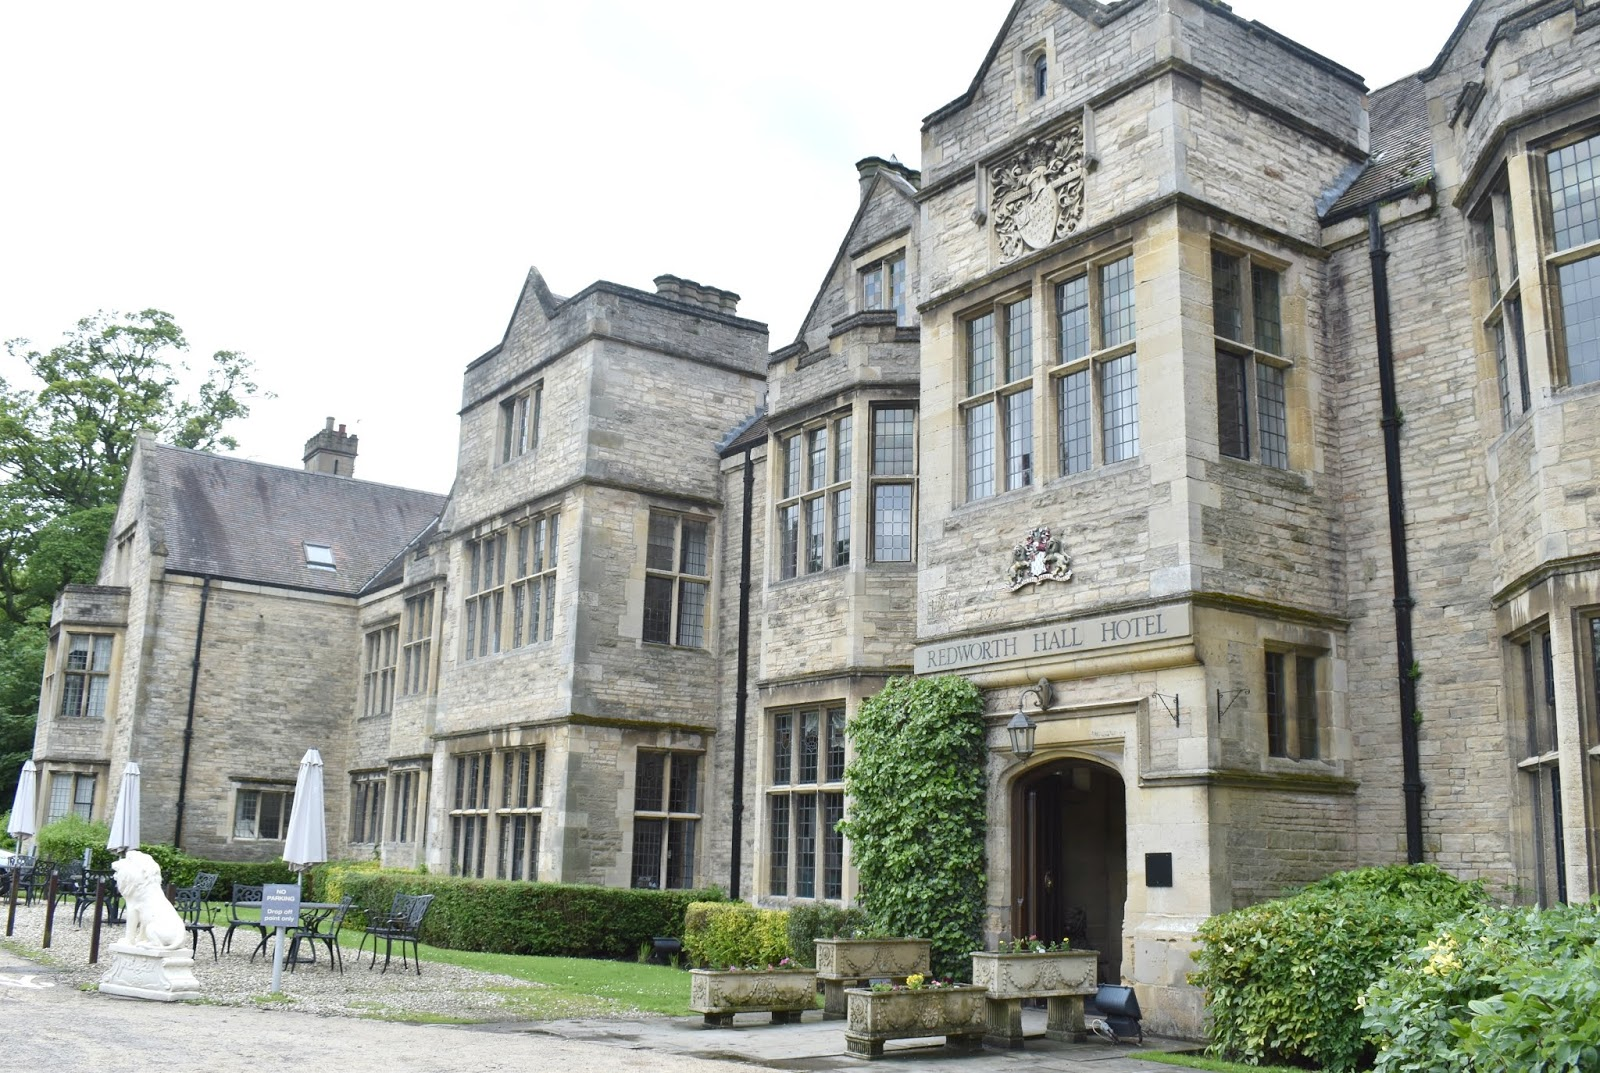 The Best Value Spa Break in the North East - Redworth Hall Hotel